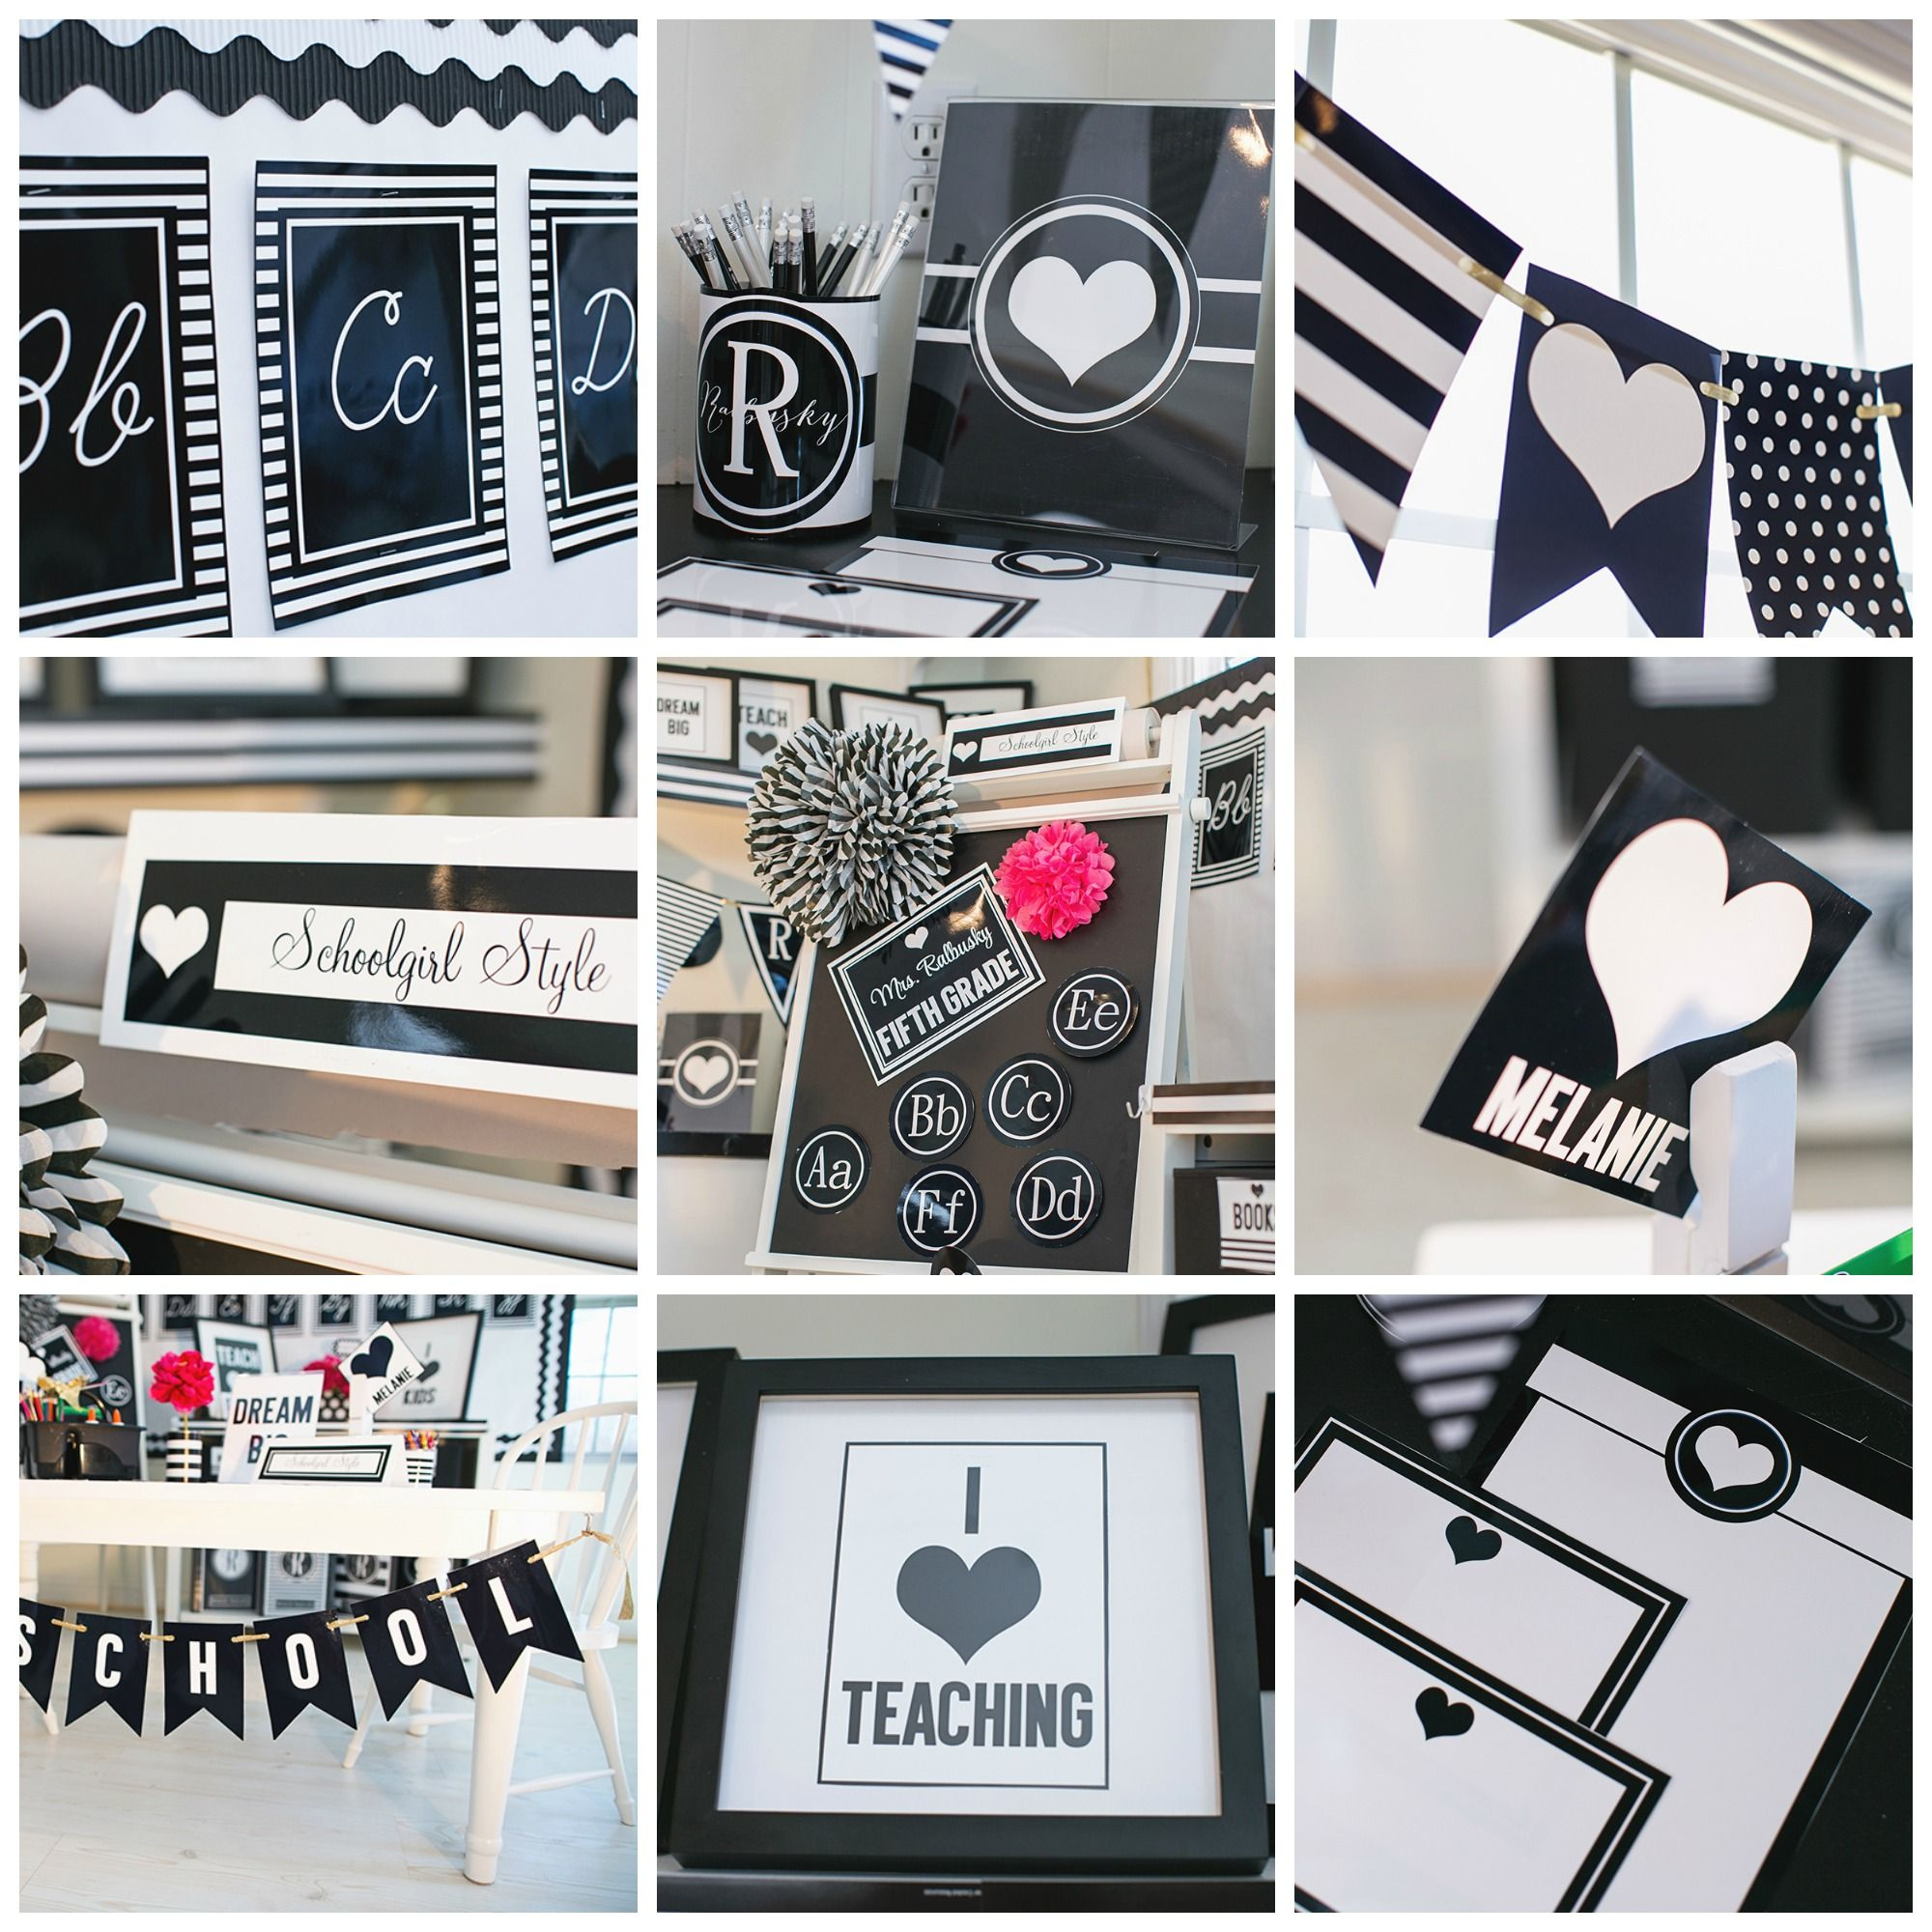 Black And White Classroom Theme Decor By Schoolgirl Style